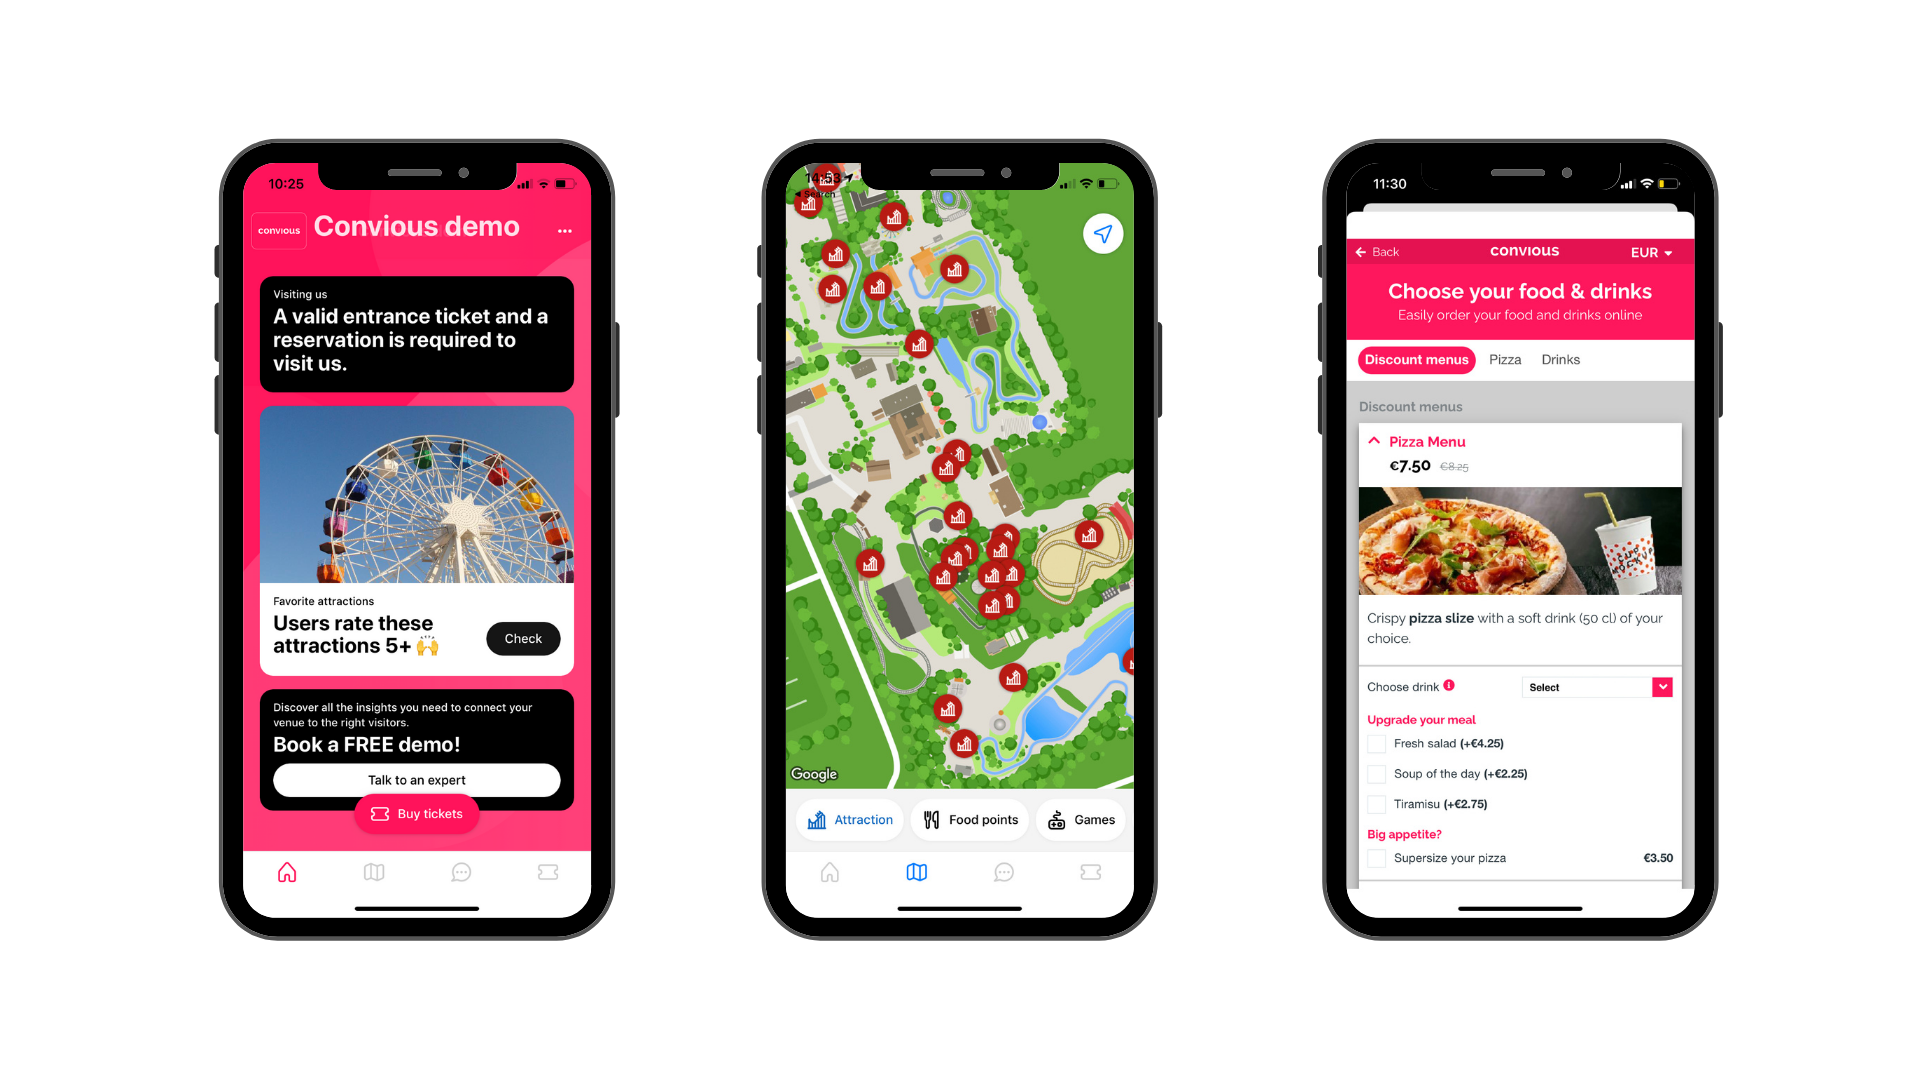 Park maps, Mobile Food Ordering and placing content - everything your visitor needs at the tip of their fingers with Tap from Convious